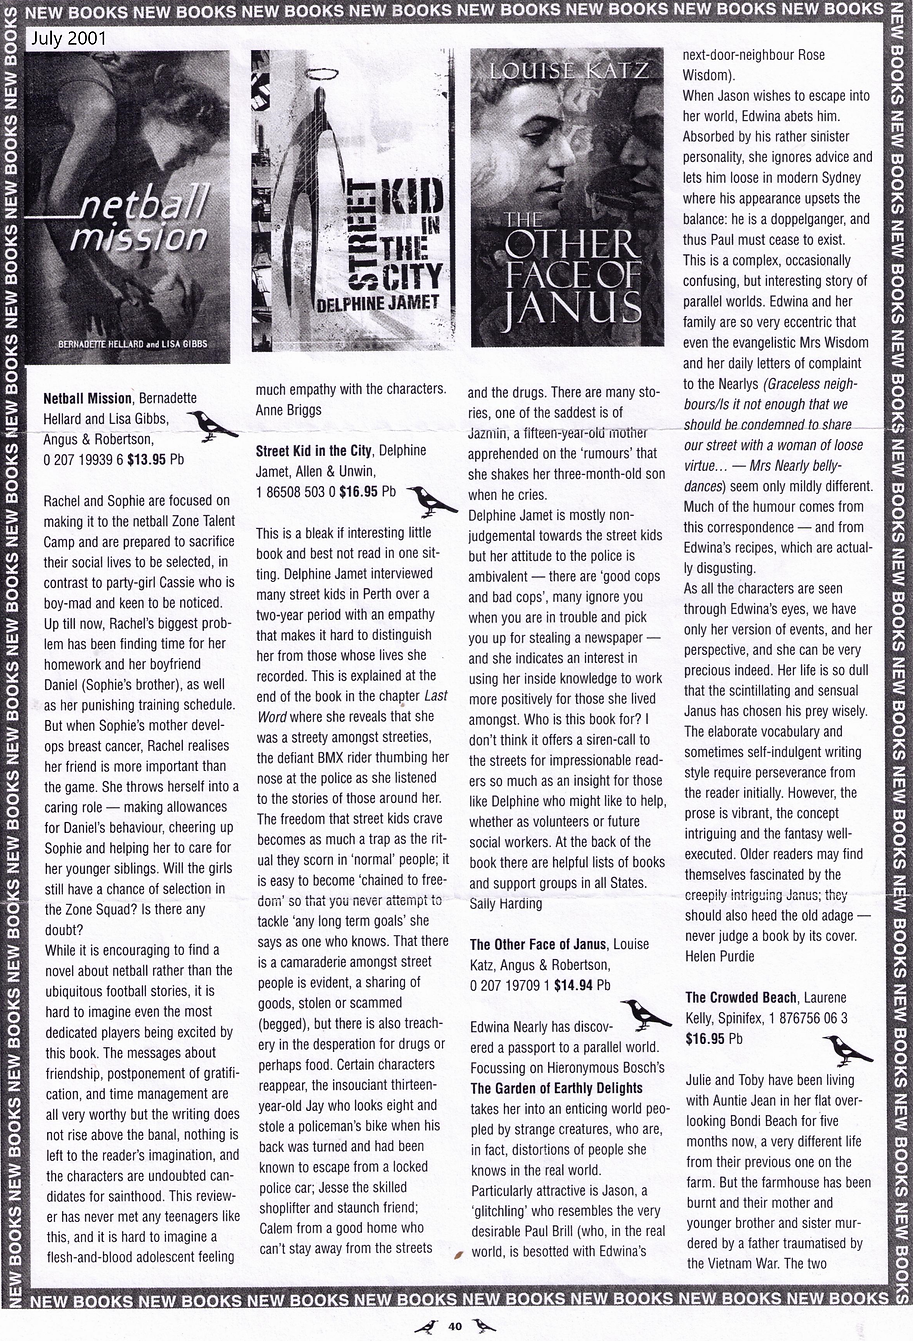 05 - Magpie - July 2001.png